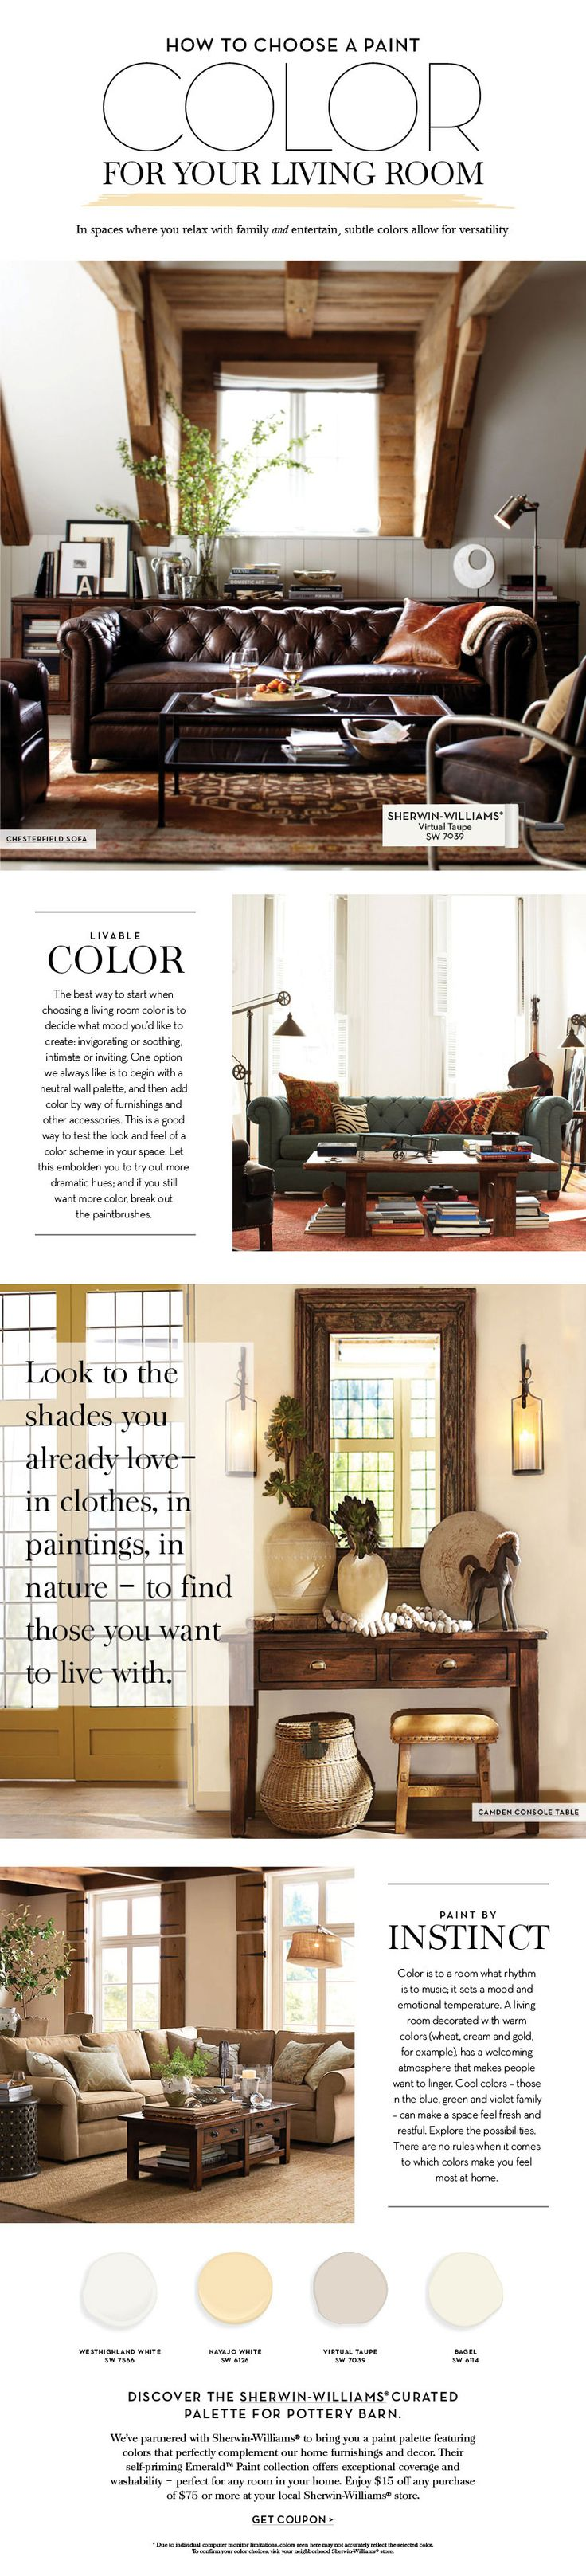 Choose A Paint Color For Your Living Room